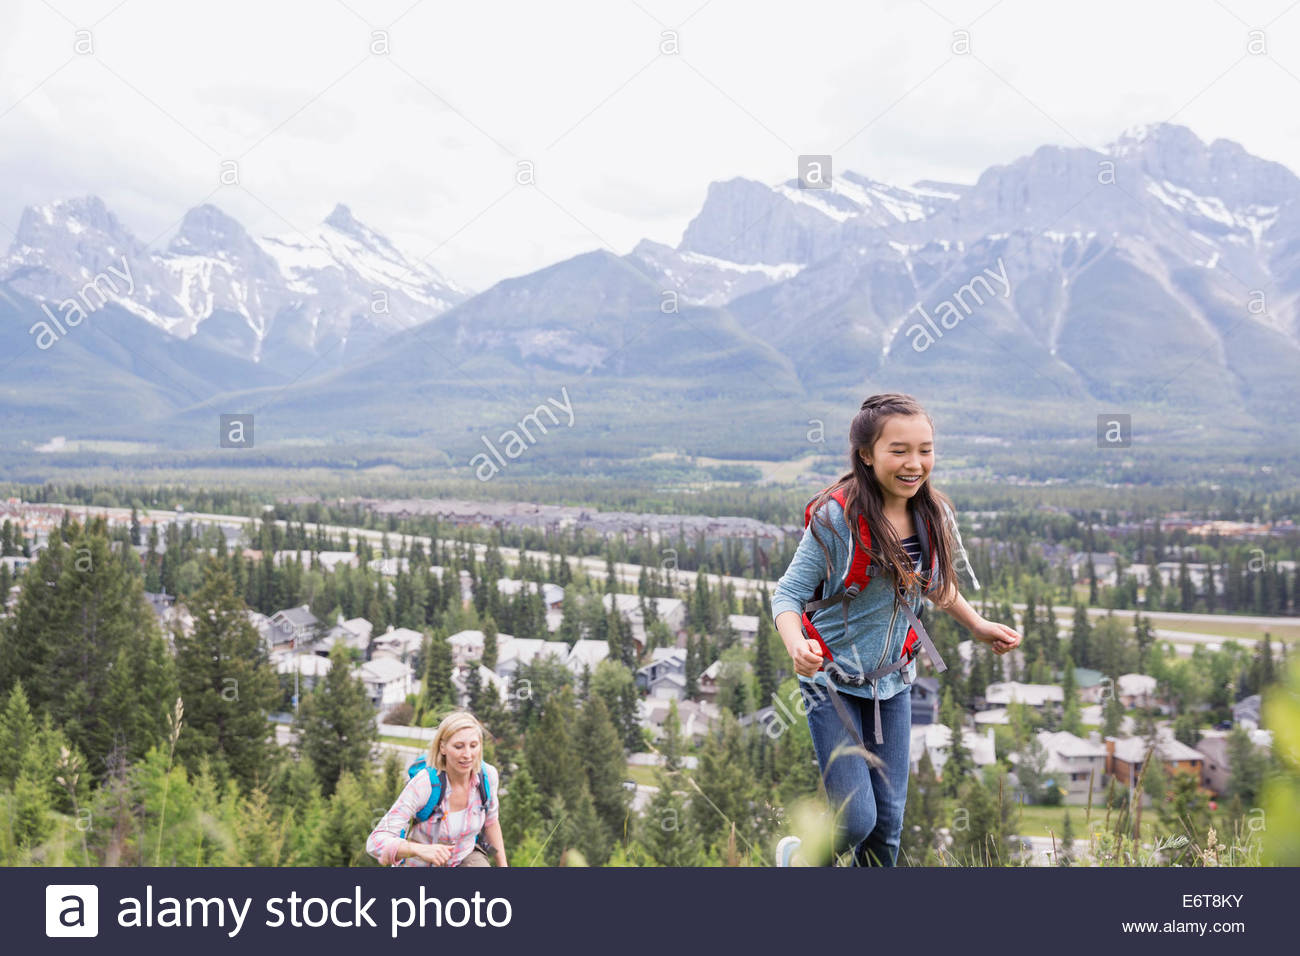 Mother and daughter hiking on rural hillside - Stock Image